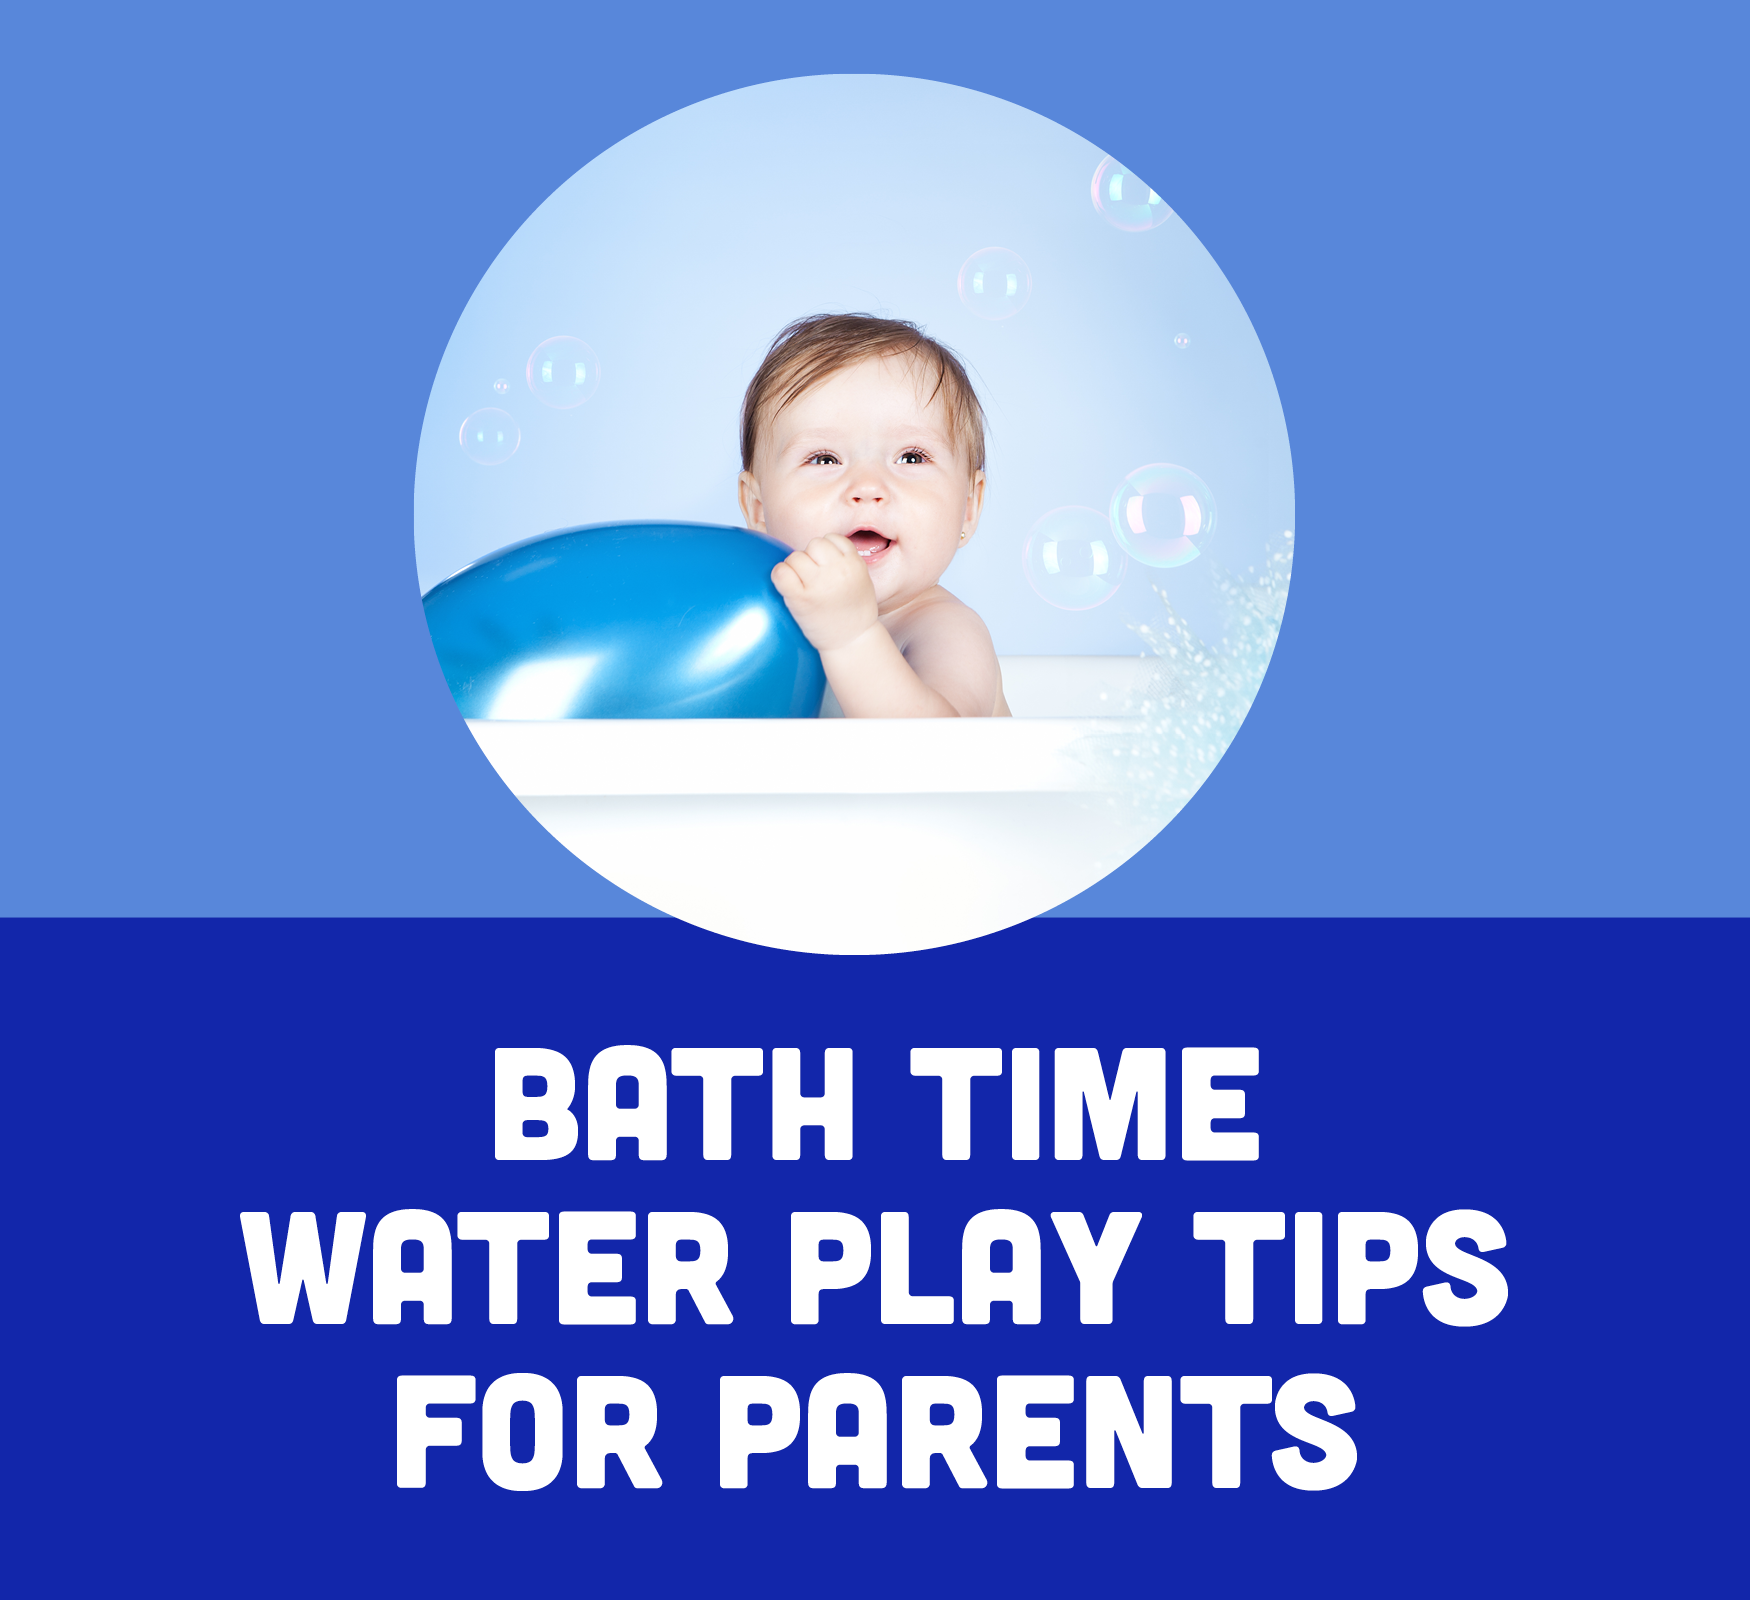 Bath Time Water Play Tips for Parents